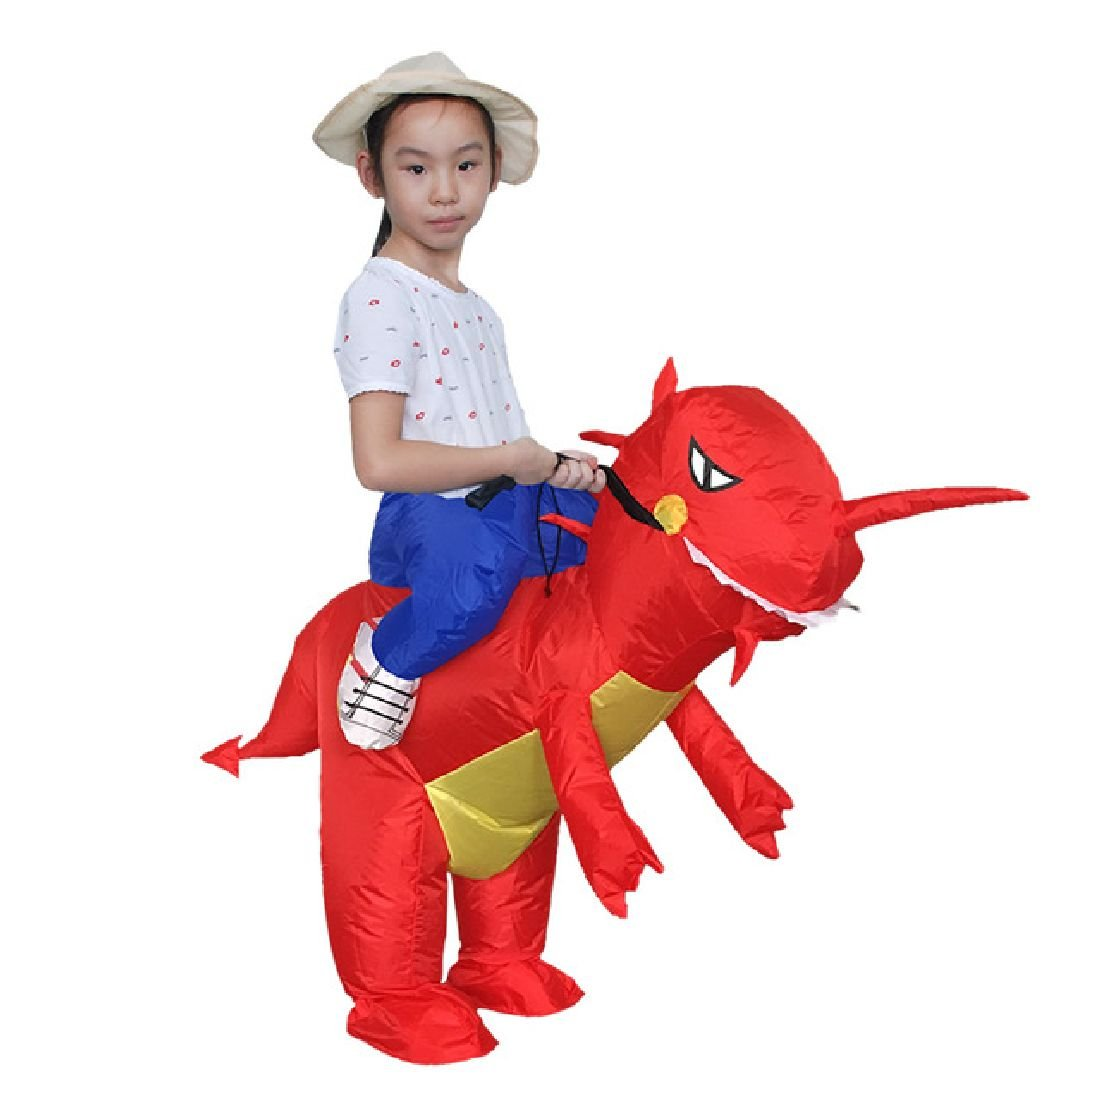 Children Inflatable Dinosaur Cosplay Ride On Dino Costumes Kids Clothing by Crystalbella Inflatable Cos